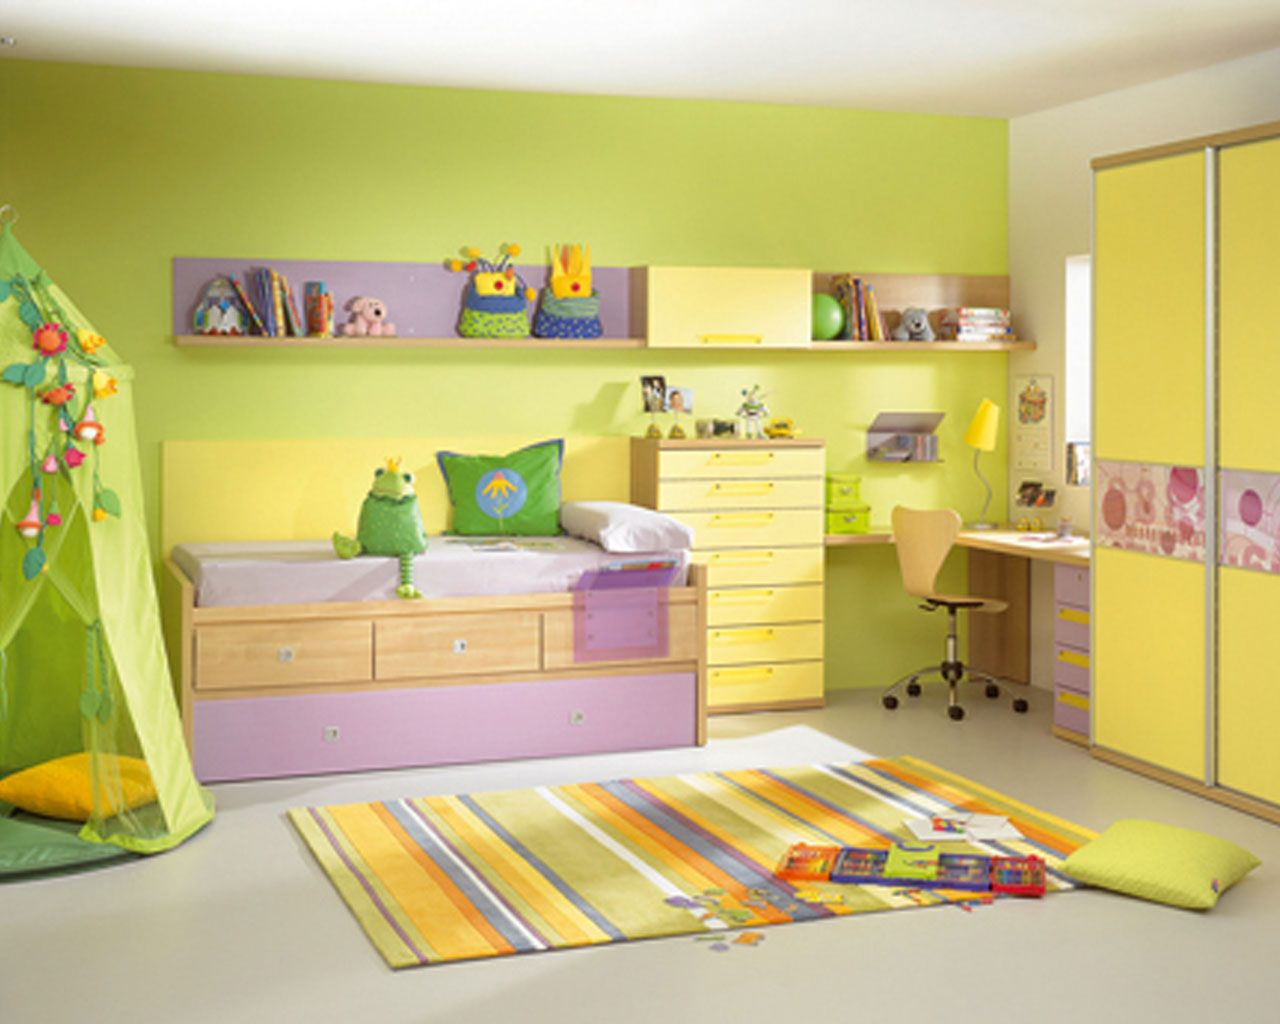 Lime green and white themed kids room paint ideas with for Kid room decor